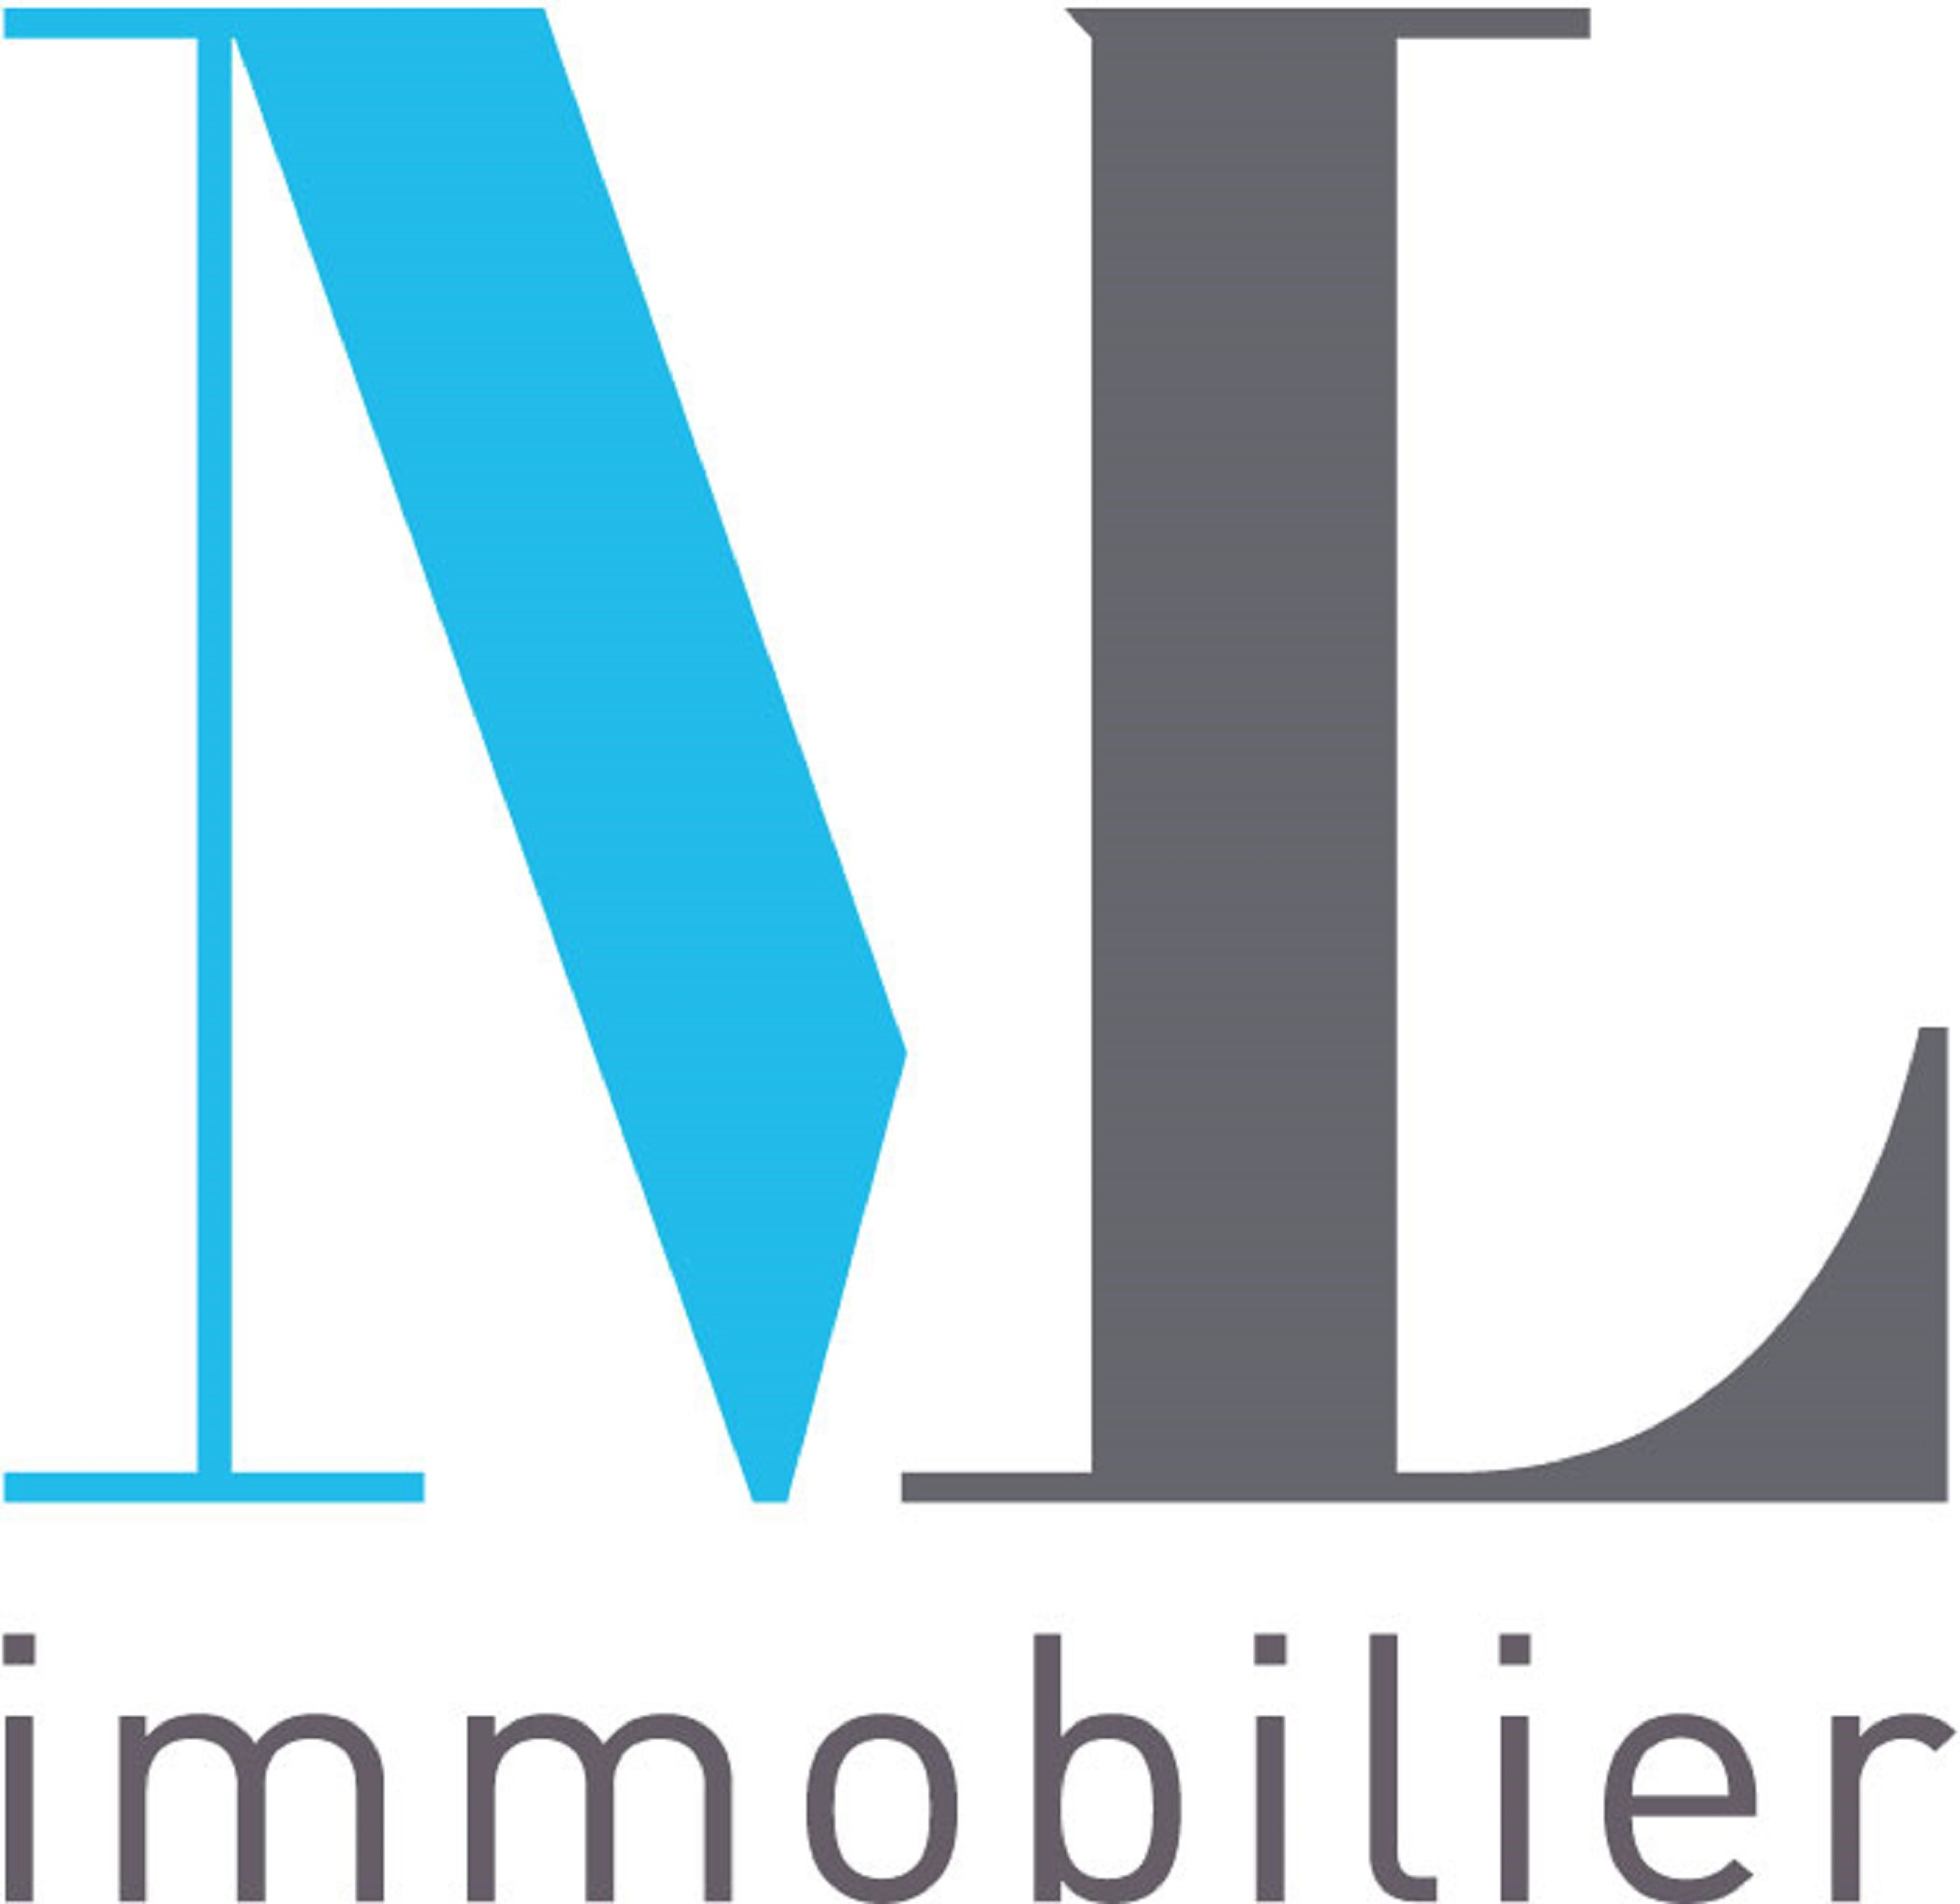 Michel leroux immobilier agence immobili re achat et for Agence de vente immobiliere